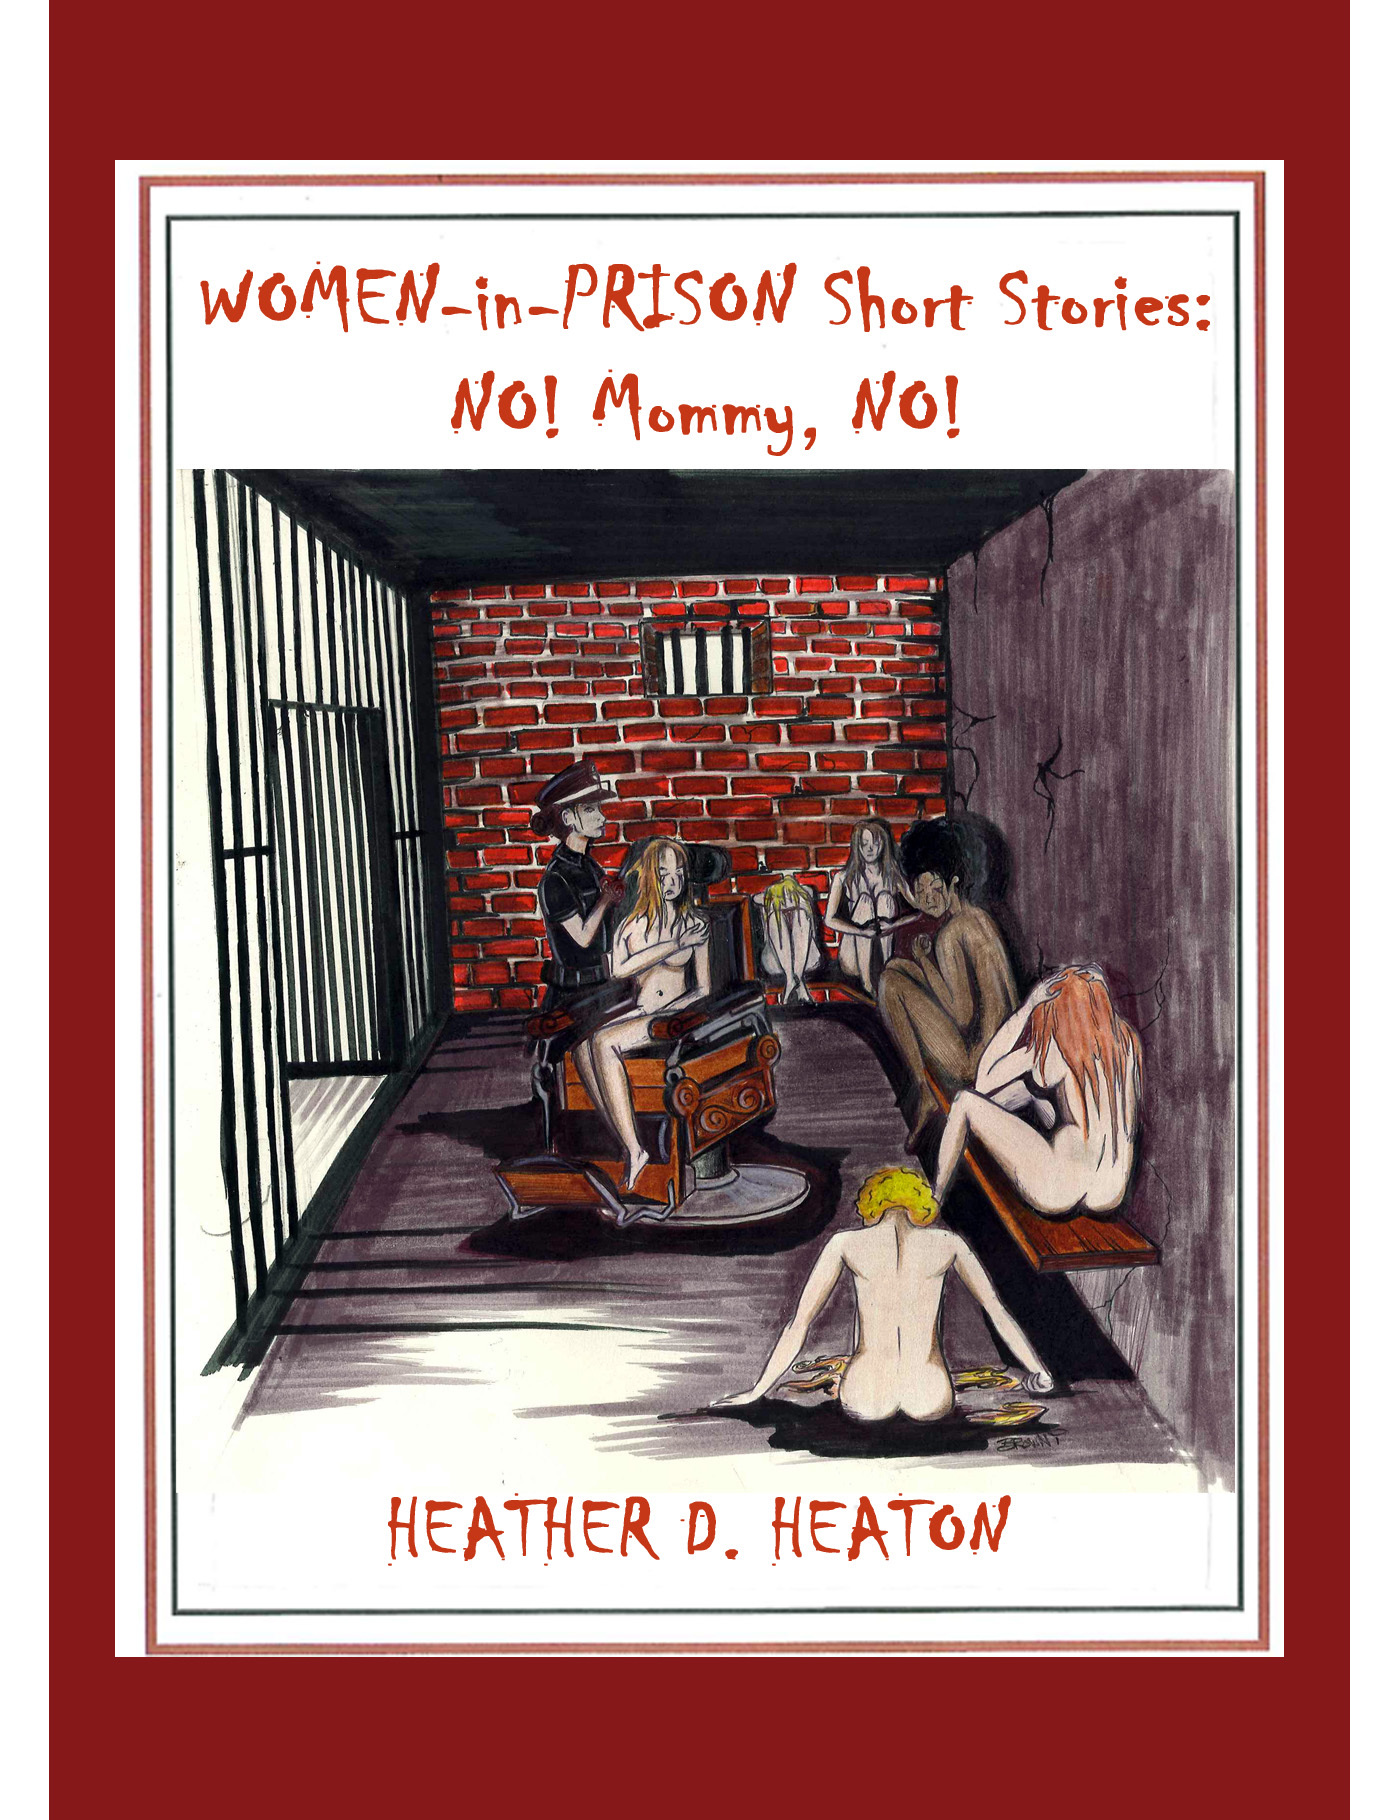 Women-in-Prison Short Stories: No! Mommy, No!